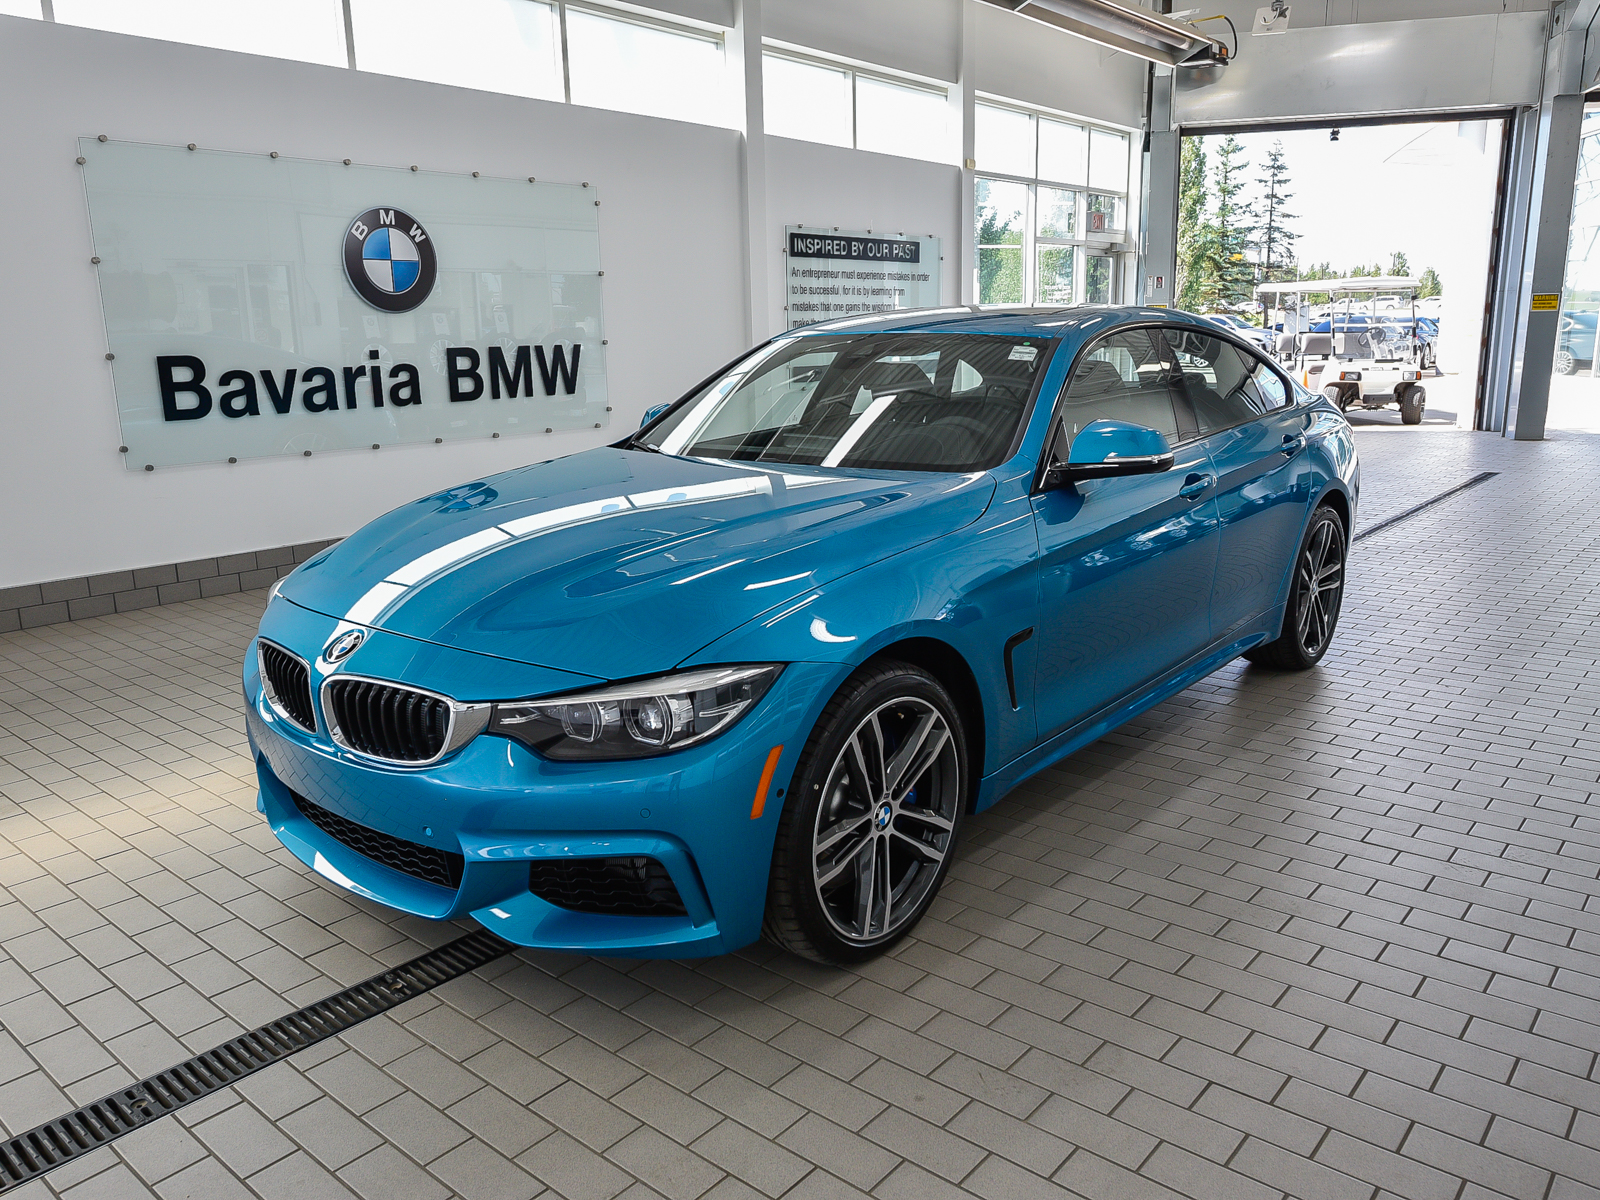 New 2019 BMW 440i xDrive Gran Coupe Coupe in Edmonton 194G4815